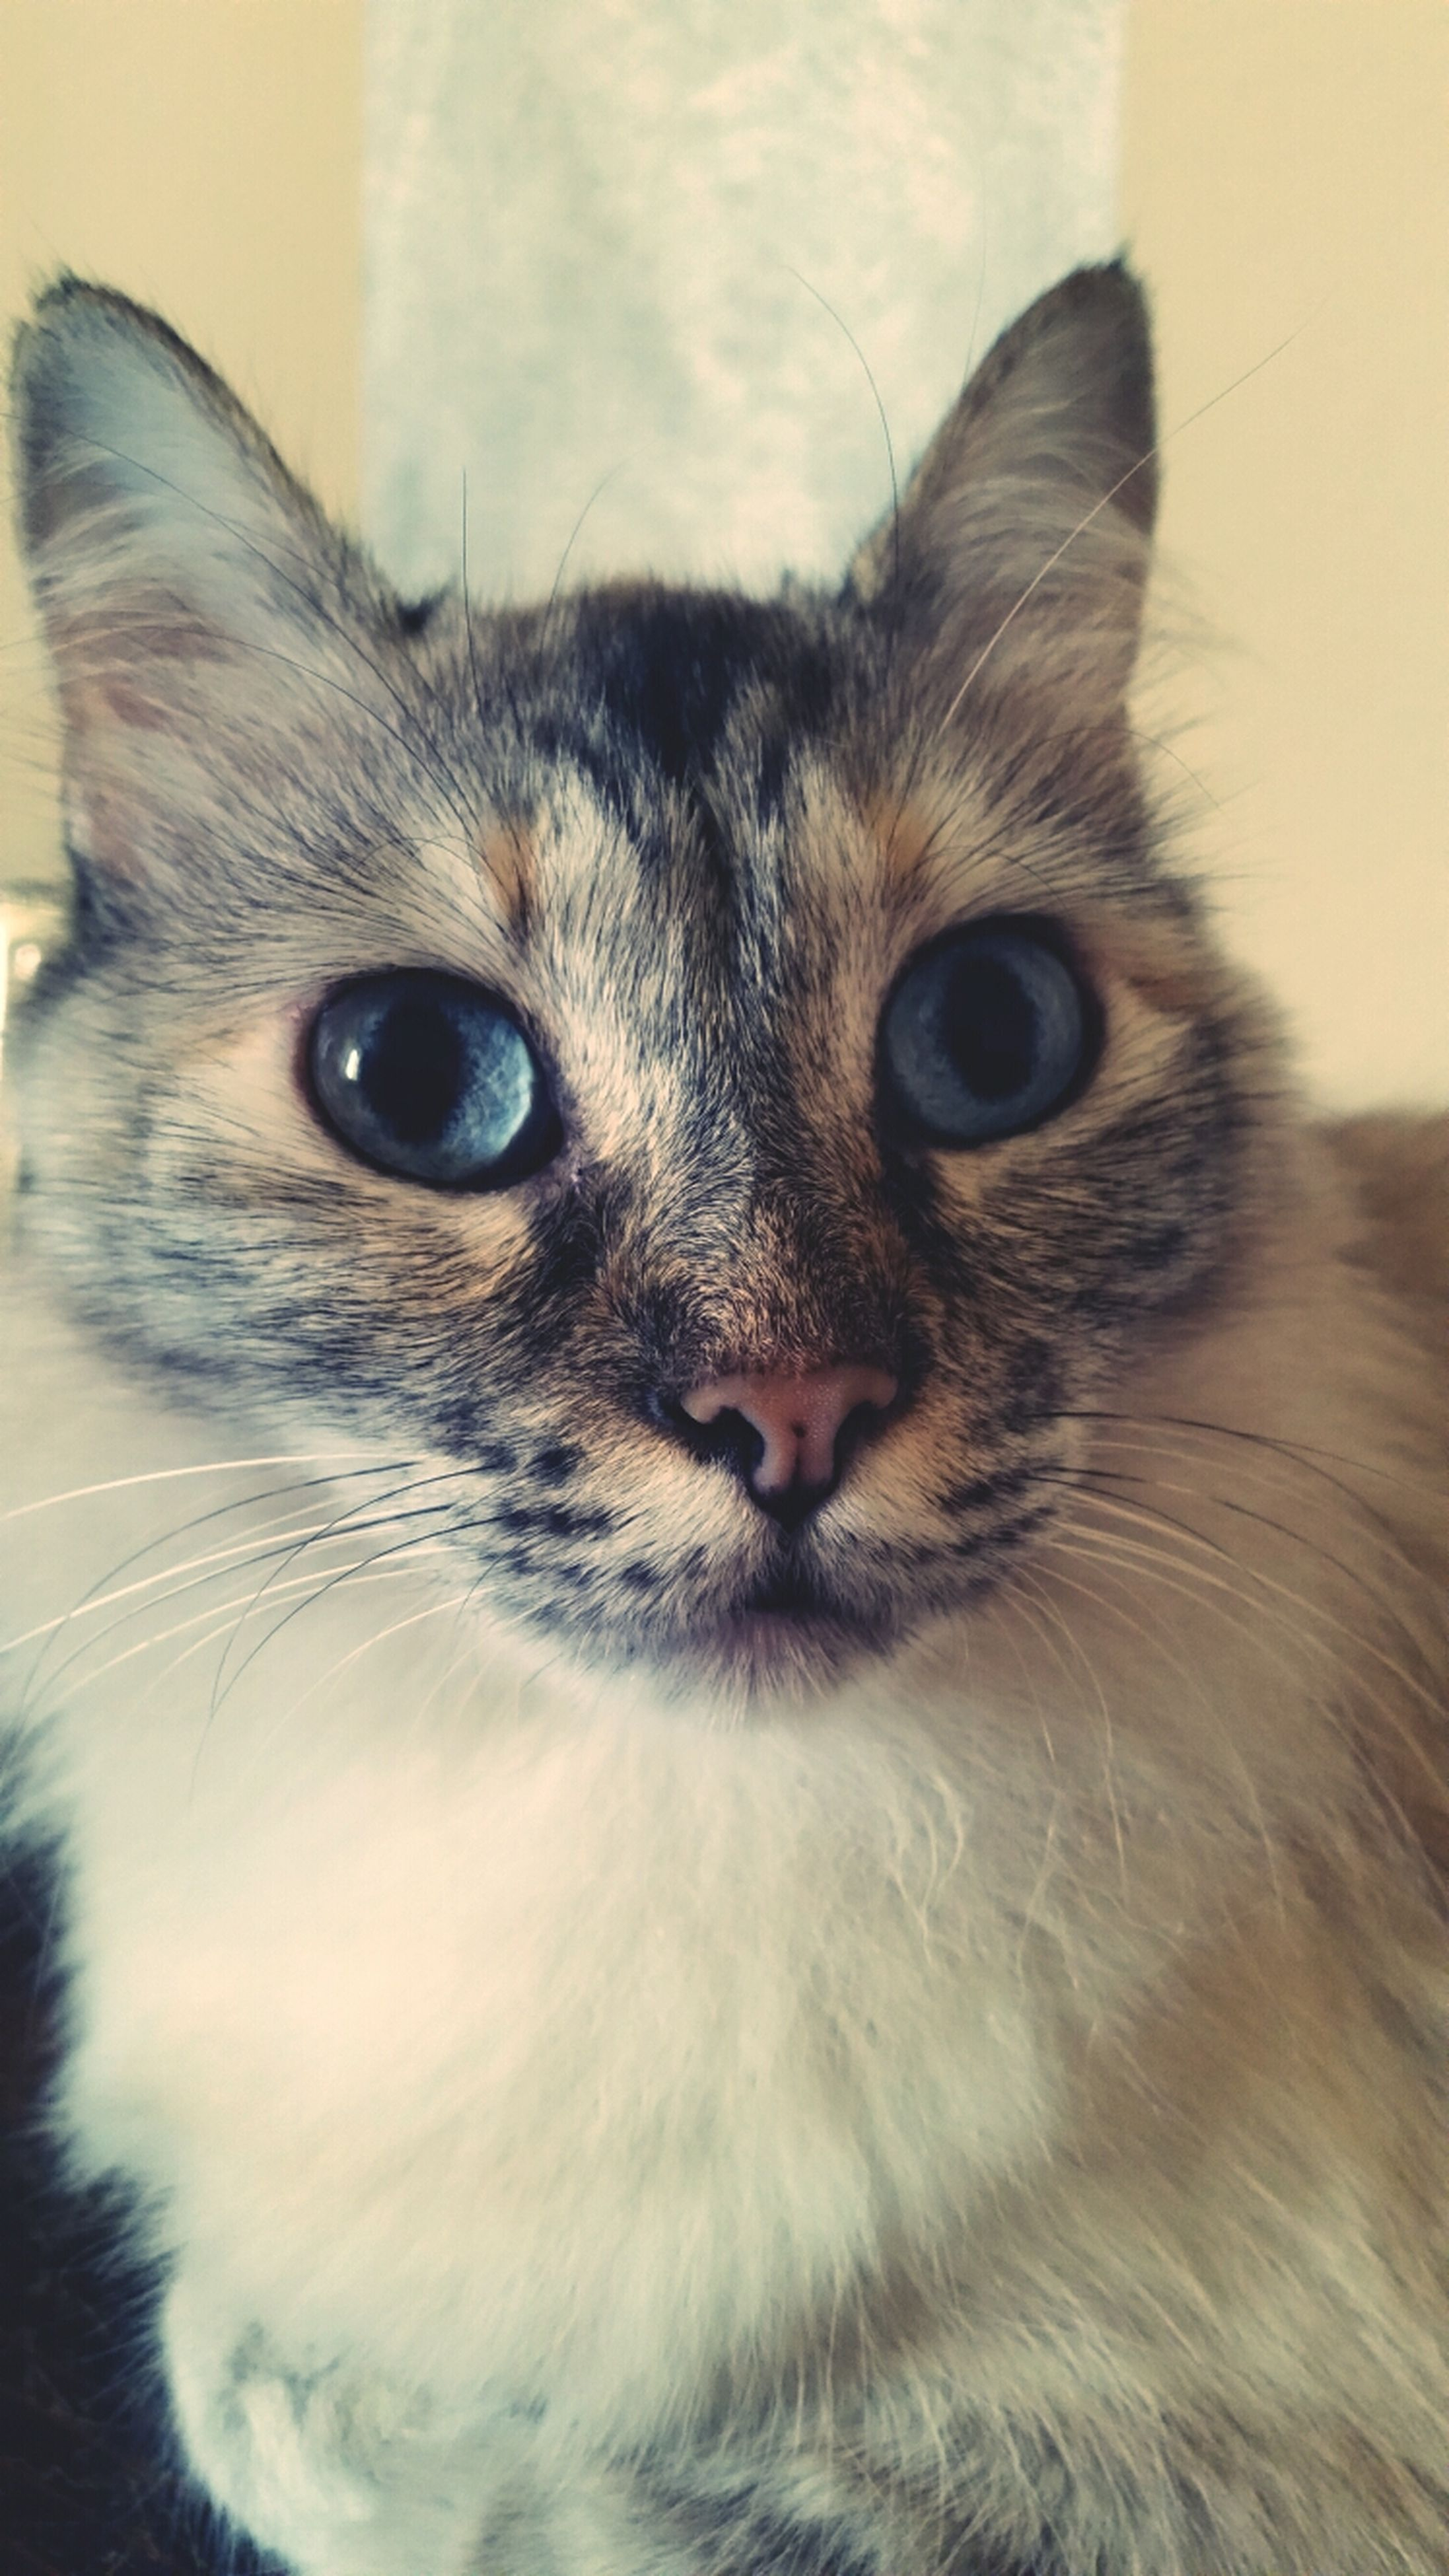 one animal, domestic cat, animal themes, pets, domestic animals, cat, feline, whisker, portrait, mammal, indoors, looking at camera, animal head, close-up, animal eye, staring, alertness, front view, animal body part